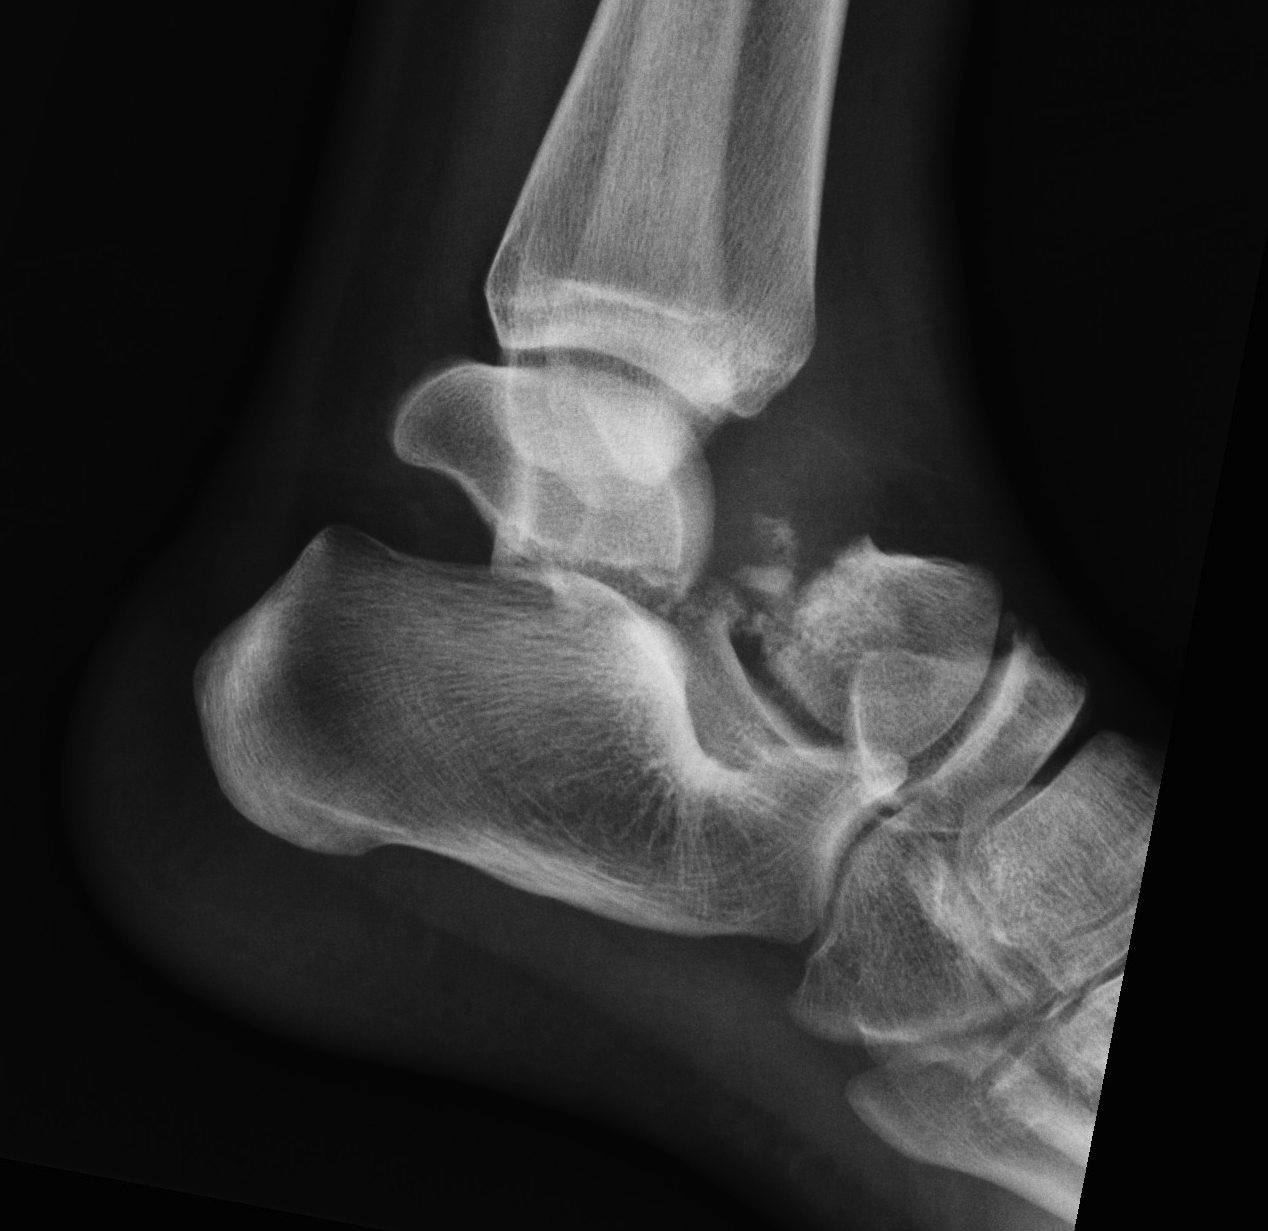 Talus Fracture Type 3